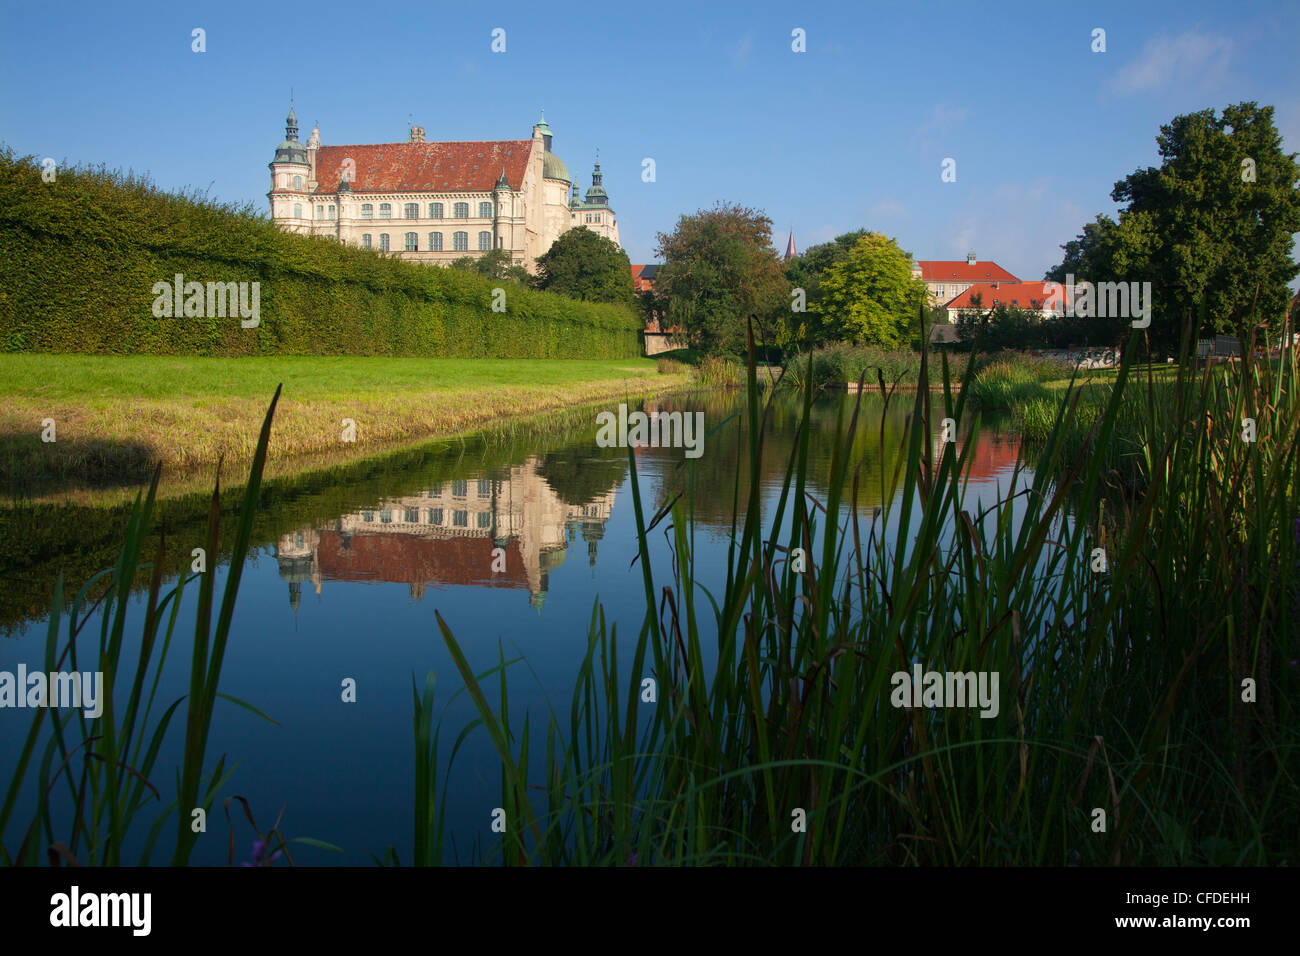 Reflection of Renaissance castle in a canal, Guestrow, Mecklenburg switzerland, Mecklenburg Western-Pomerania, Germany, - Stock Image